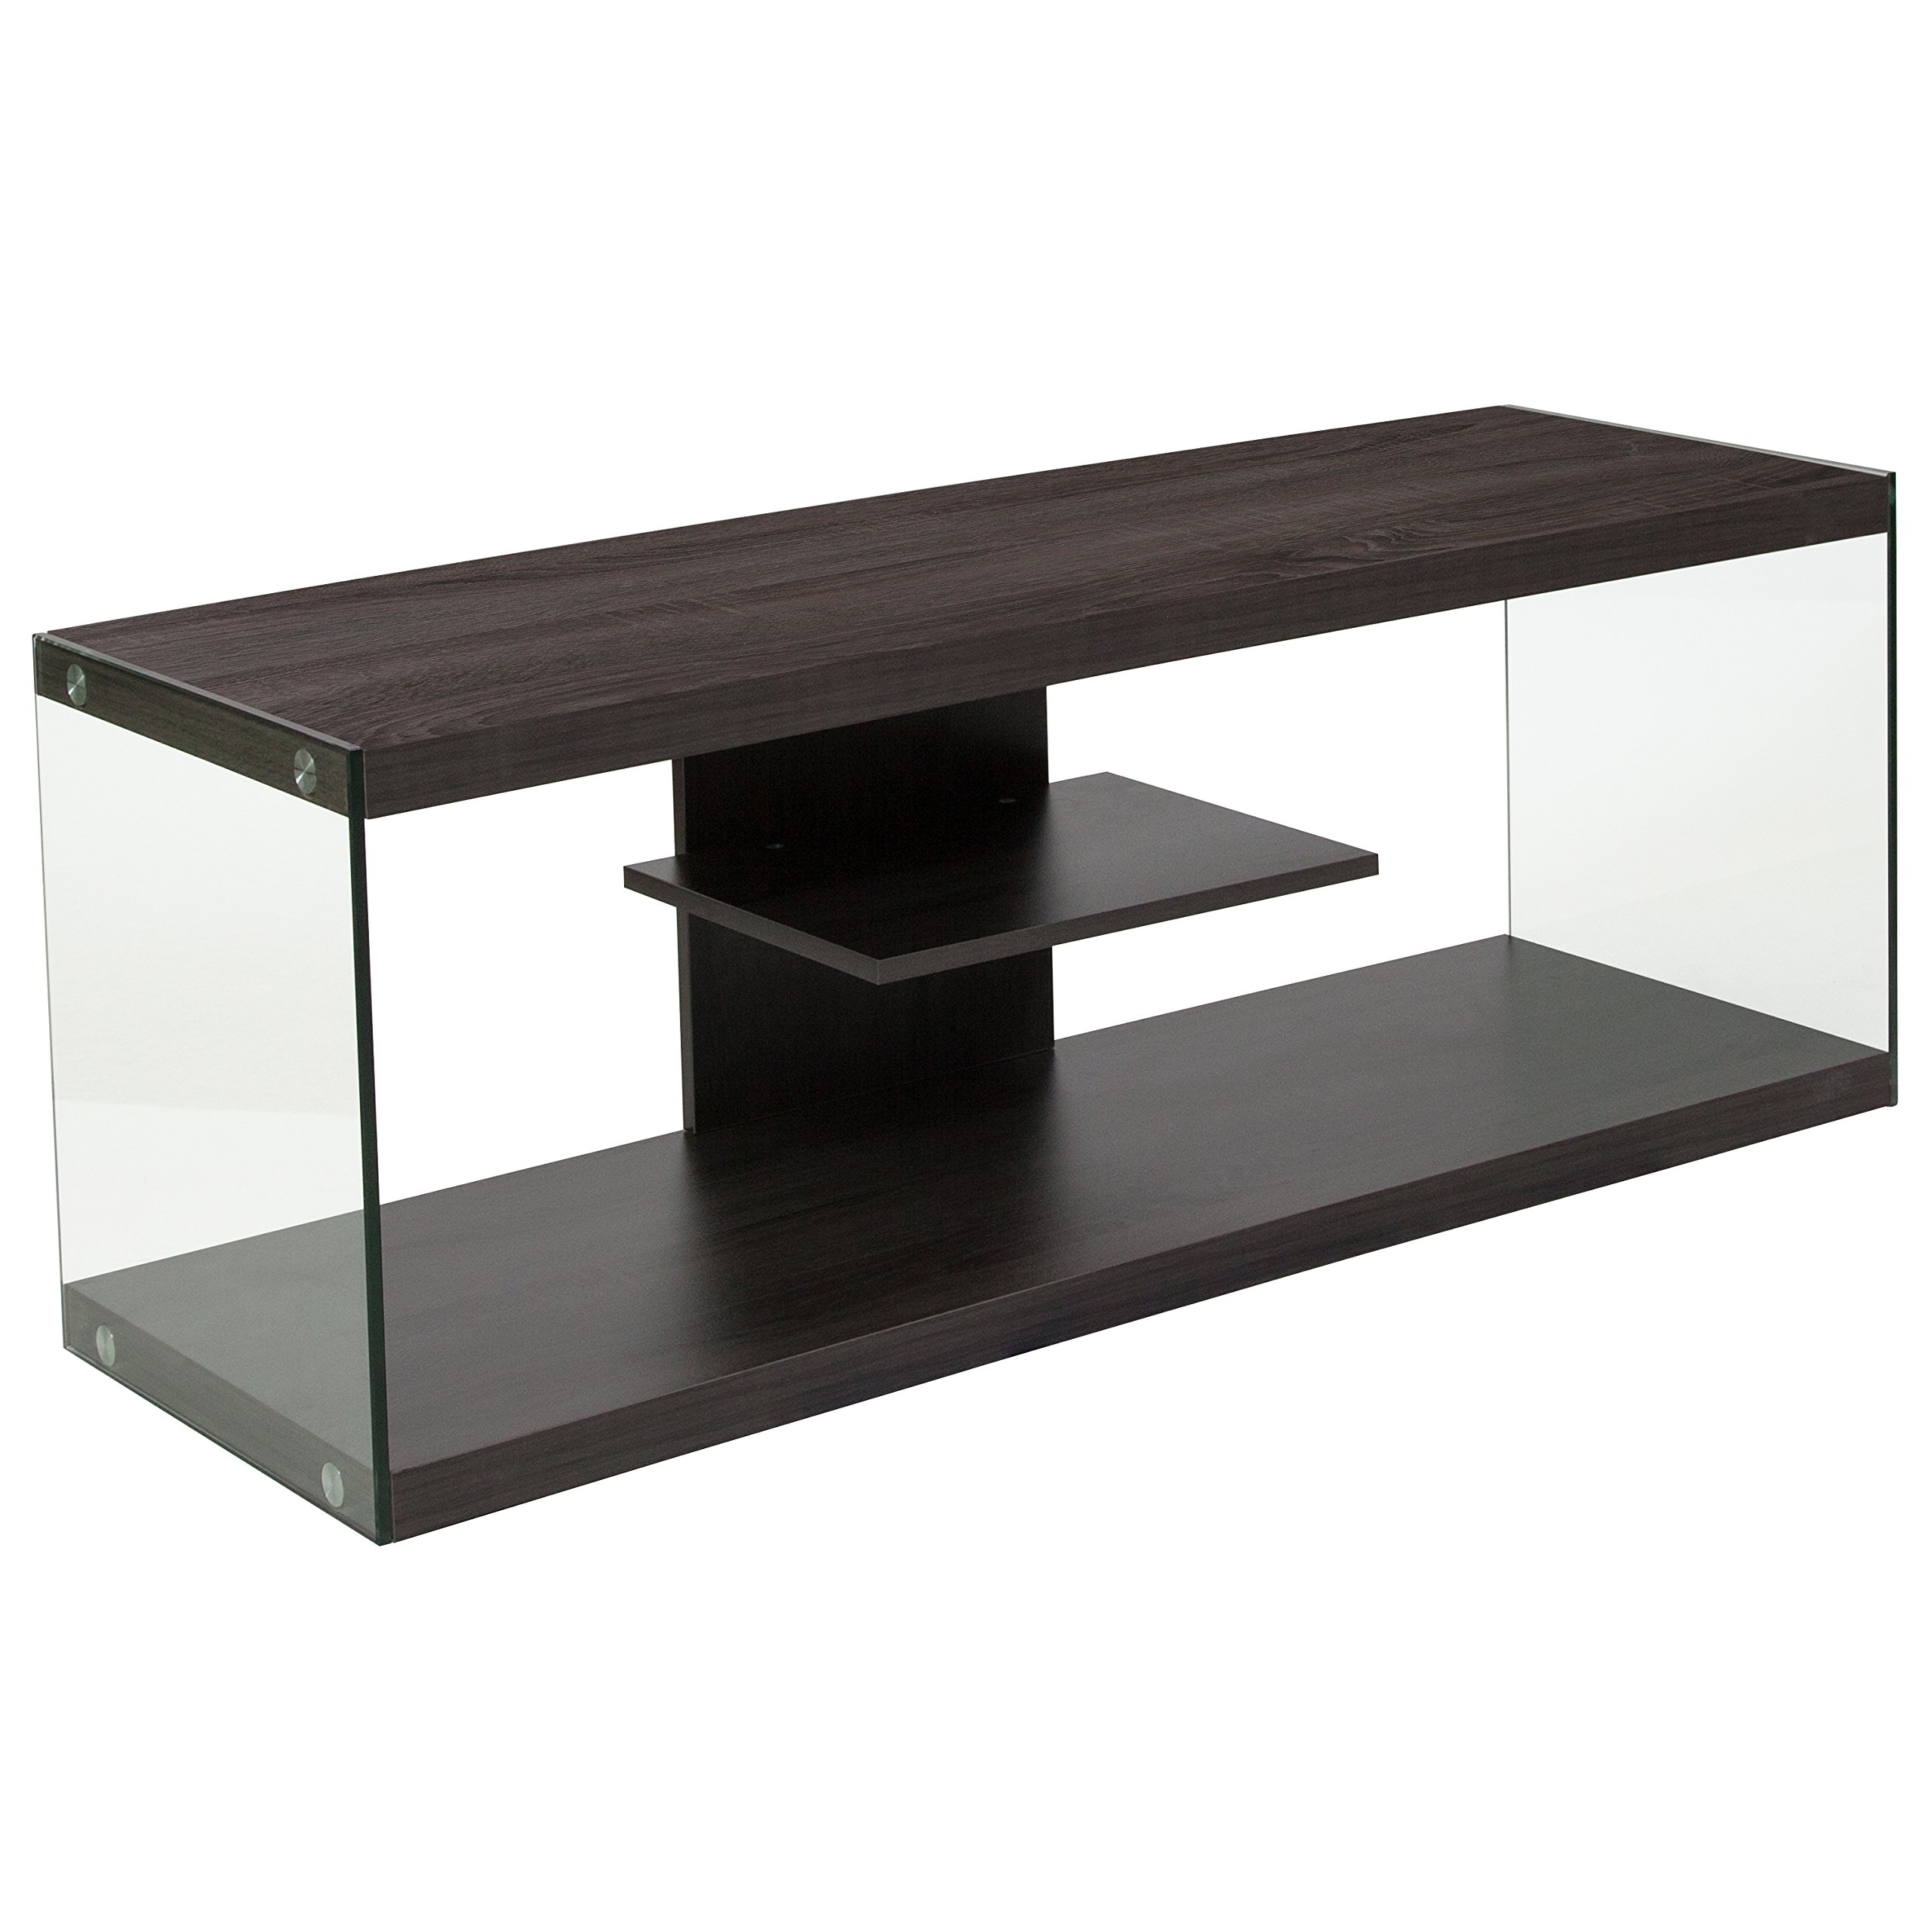 Flash Furniture Cedar Lane Collection Driftwood Wood Grain Finish TV Stand with Shelves and Glass Frame